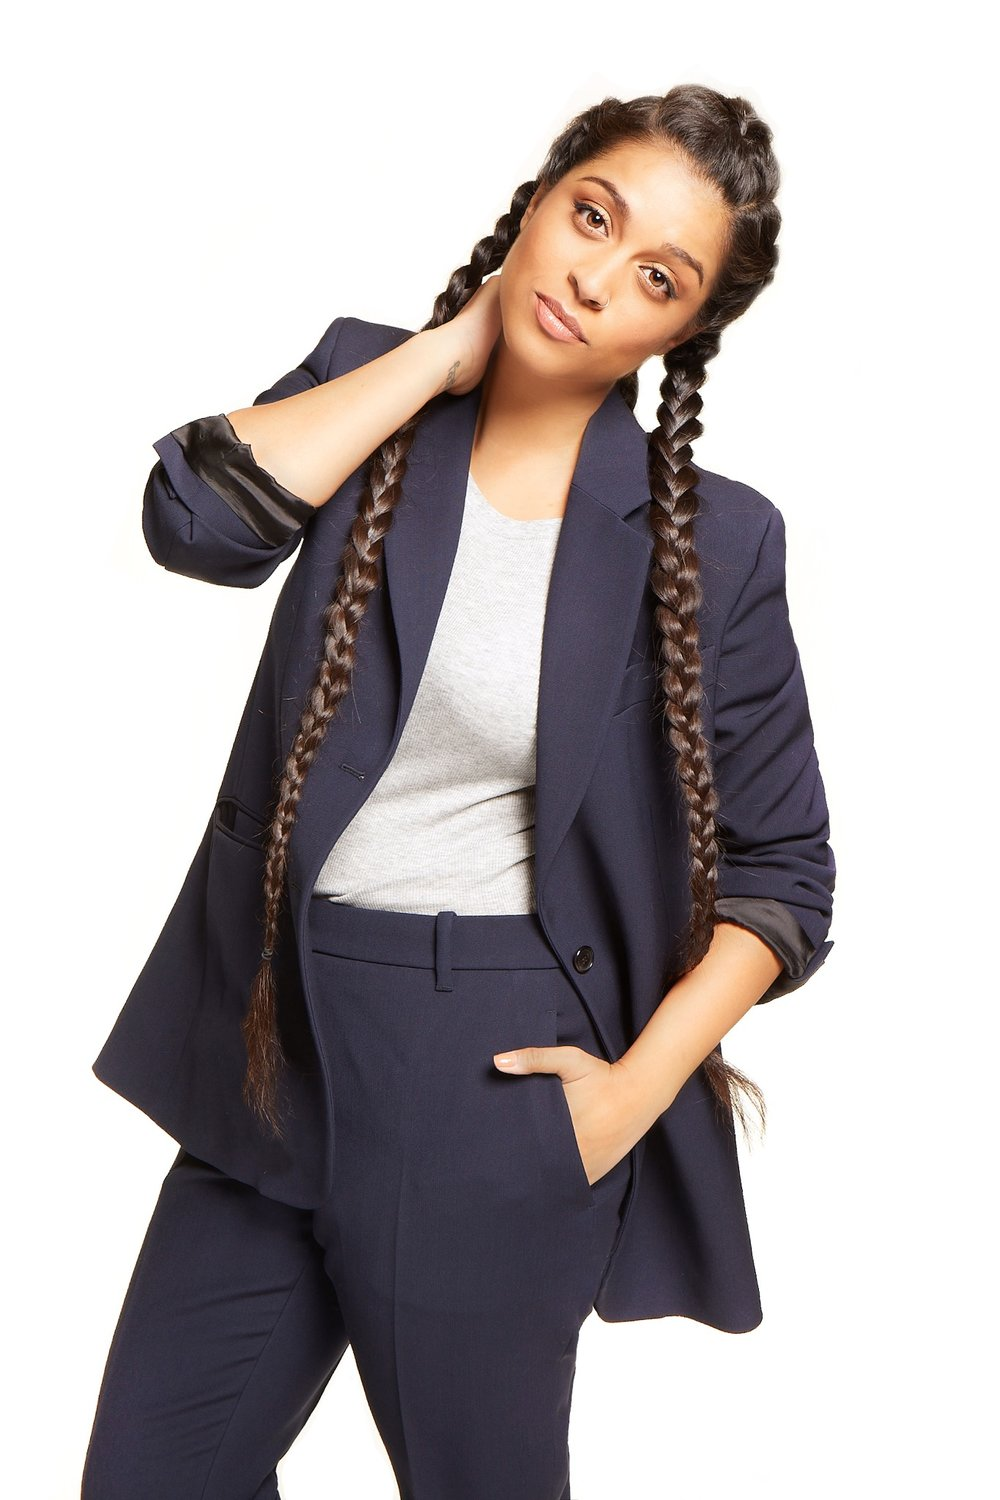 photo Lilly Singh